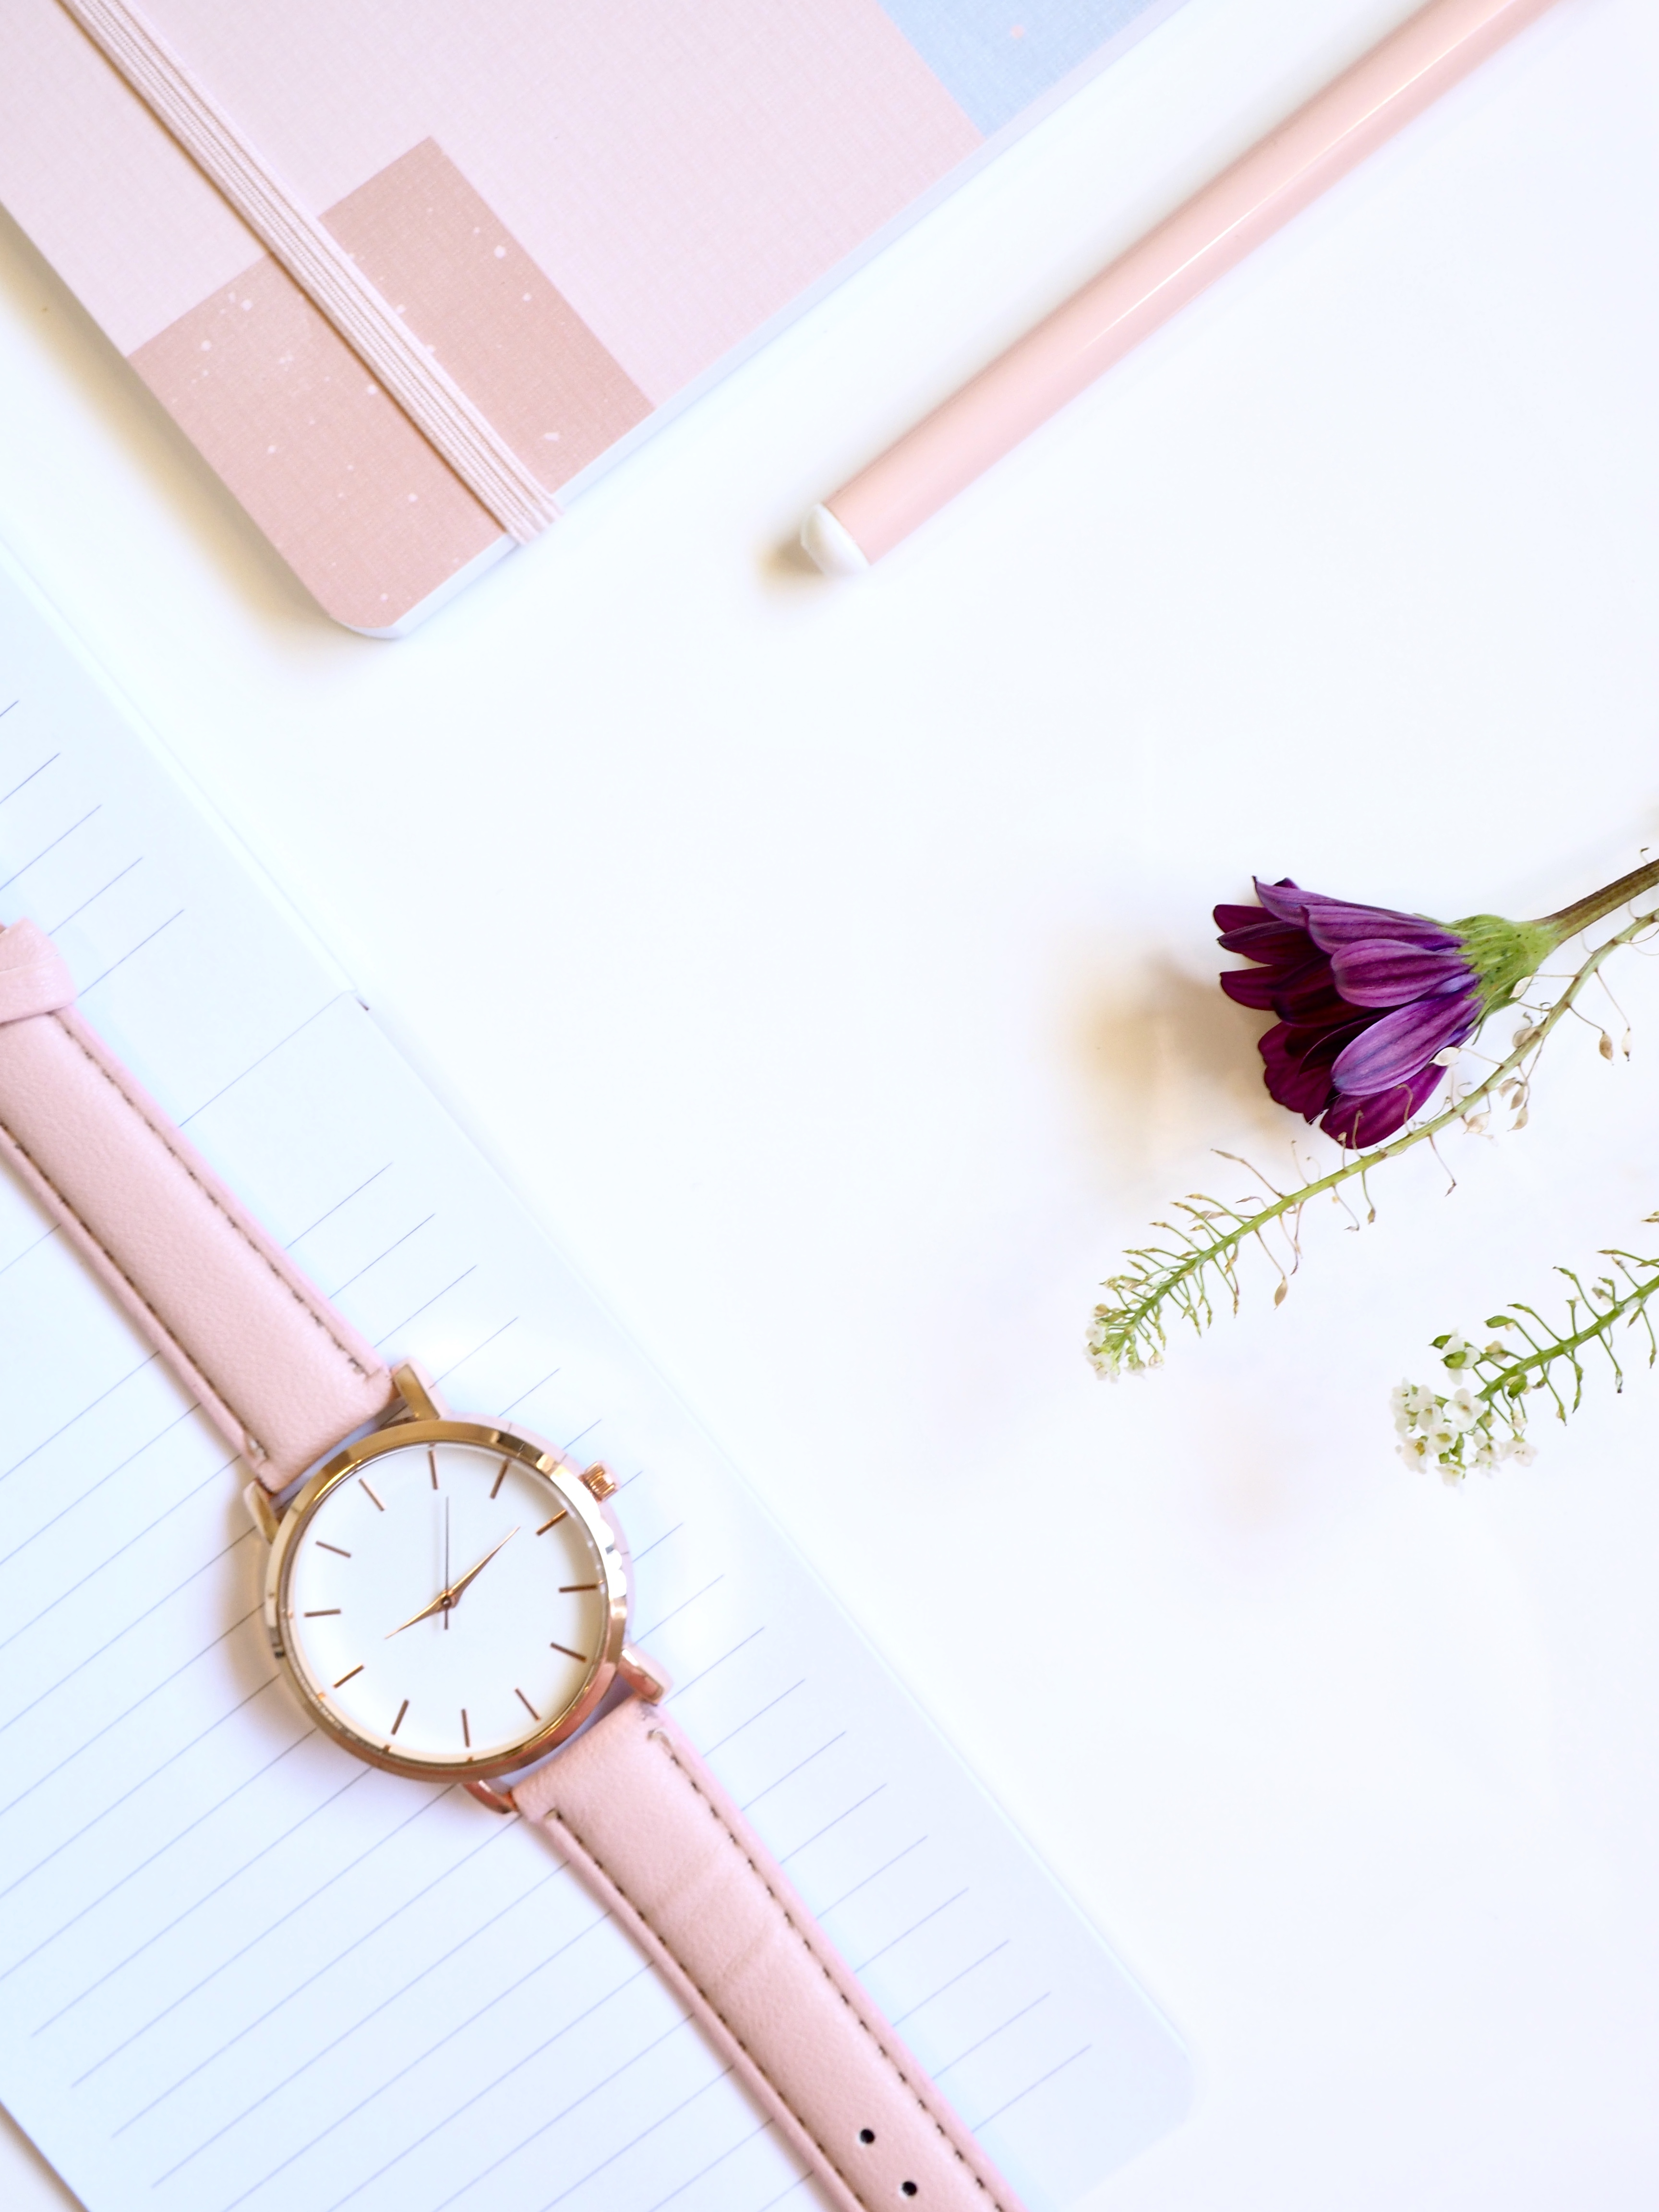 Round Gold-colored Analog Watch at 2:46 on Top of White Paper